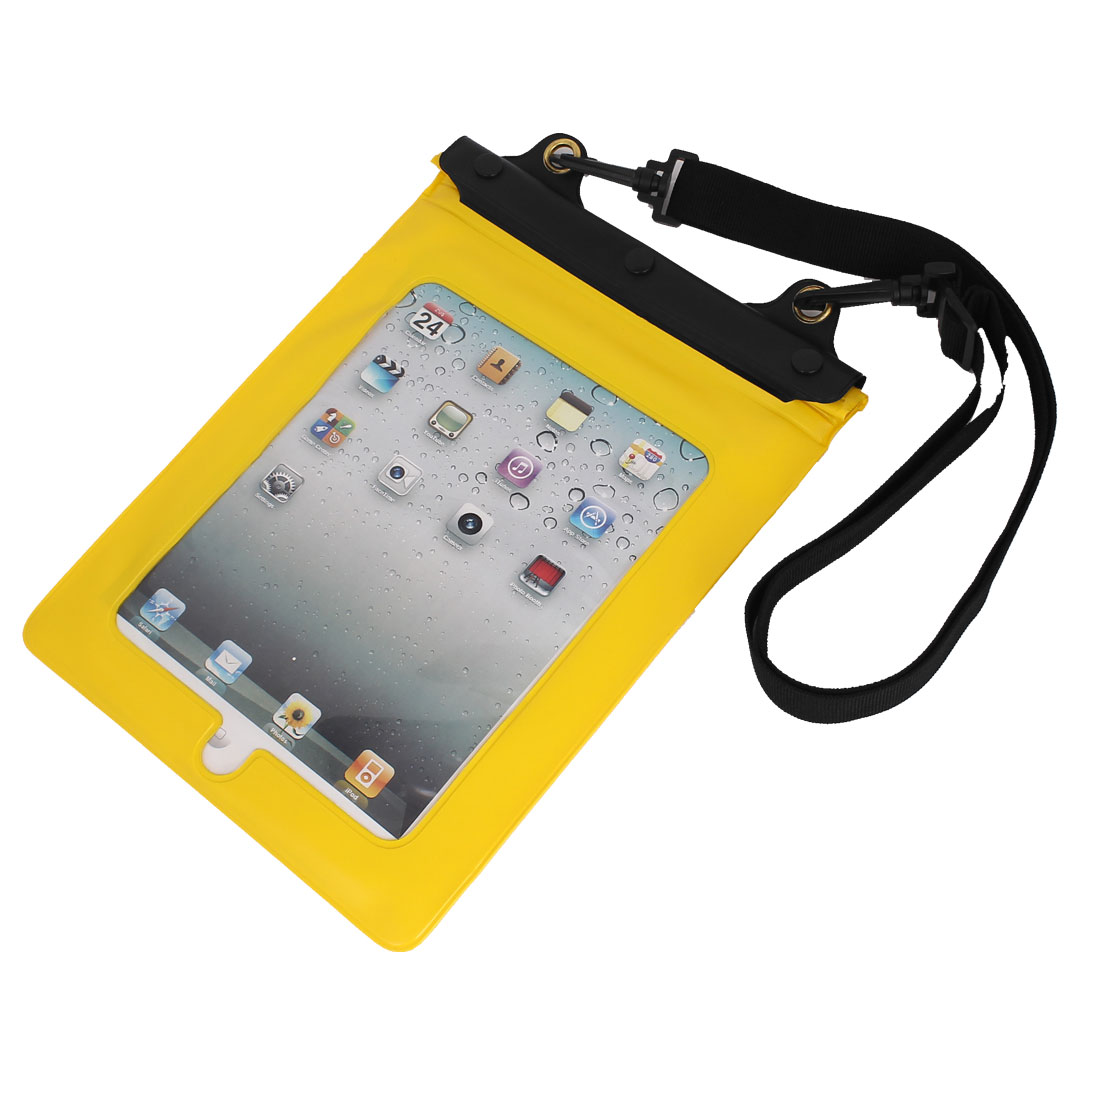 Waterproof Bag Dry Pouch Case Yellow for iPad Mini 1/2 w Hook Strip